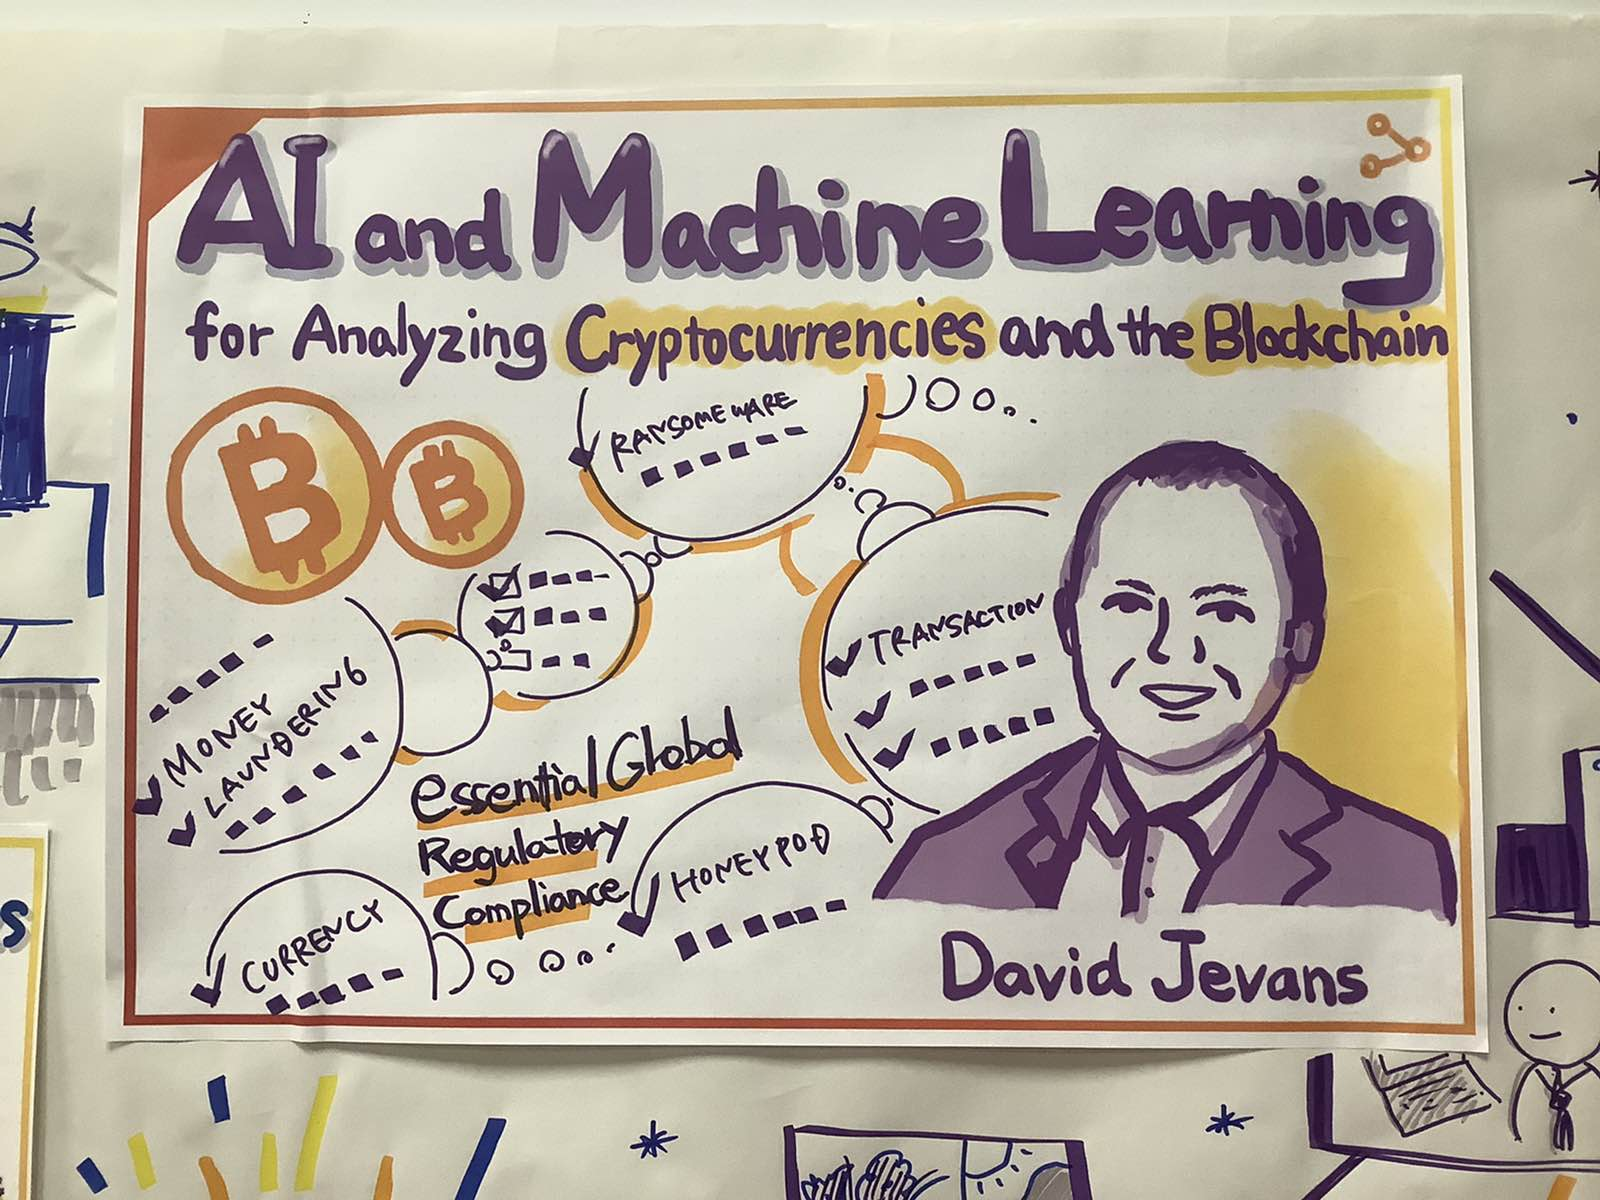 AI and Machine Learning for Analyzing Cryptocurrencies and the Blockchain